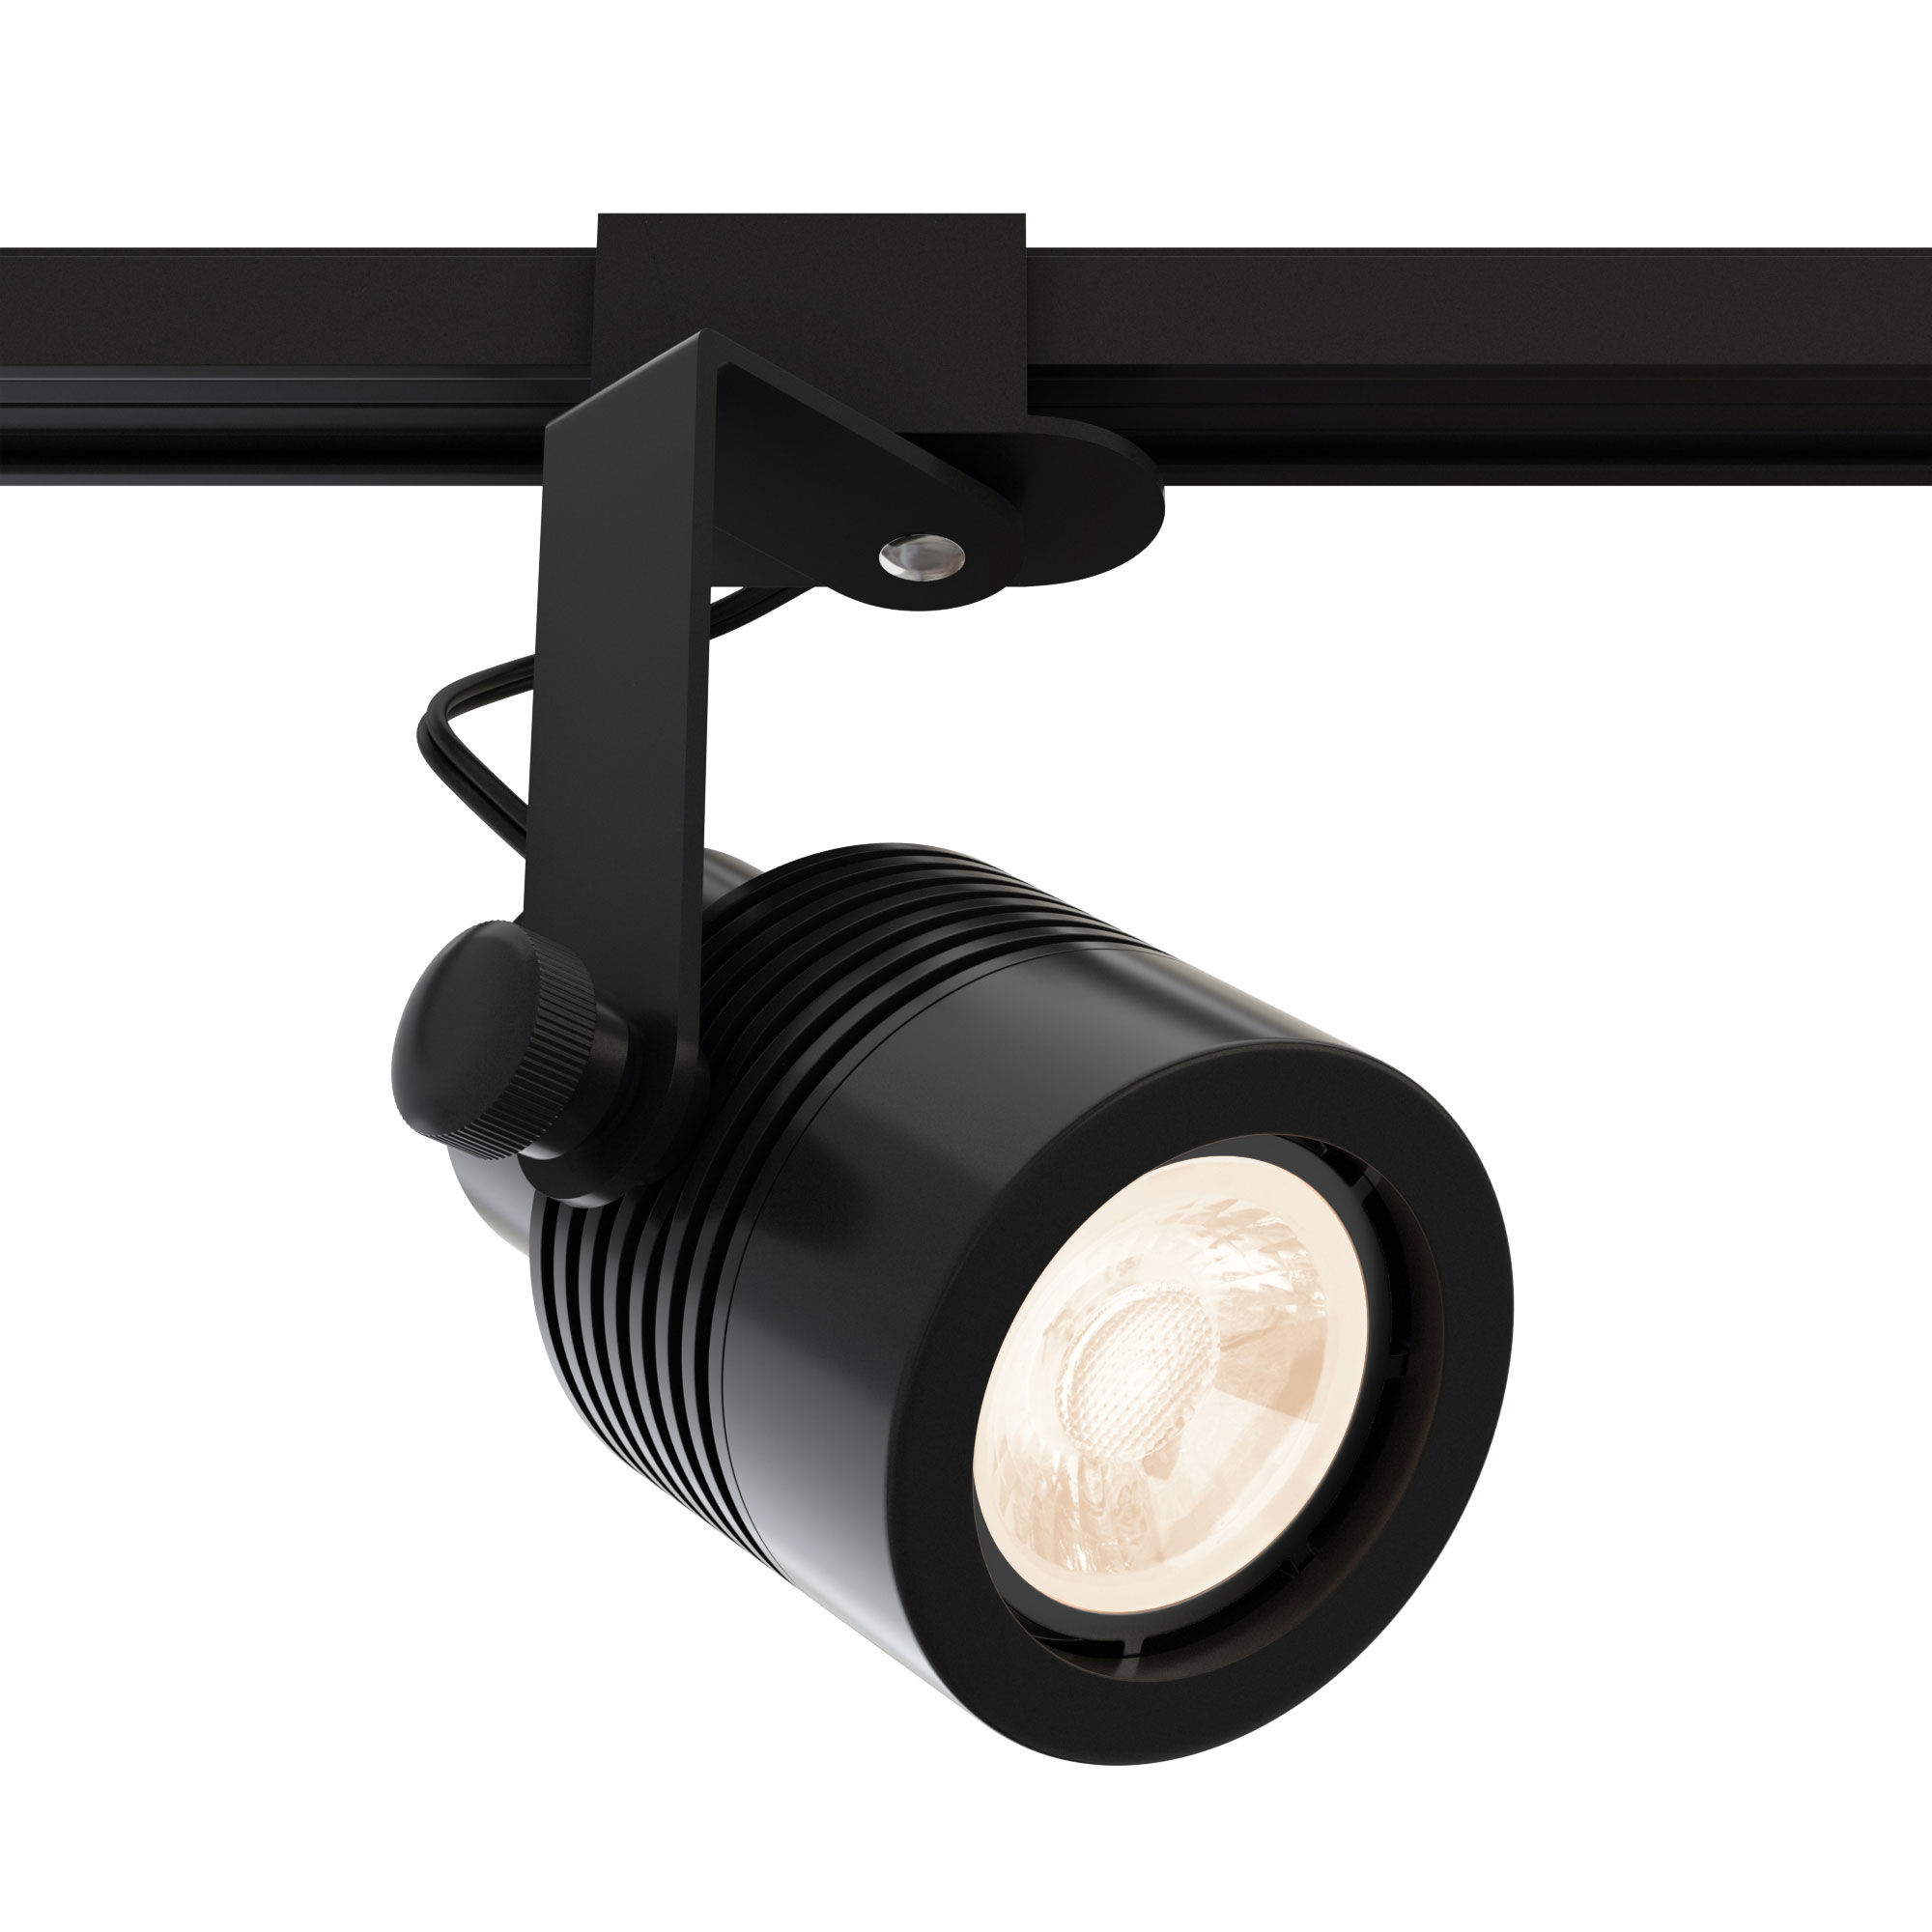 Micro outdoor track light mr16 12v by pureedge lighting tx12 micro bk aloadofball Image collections